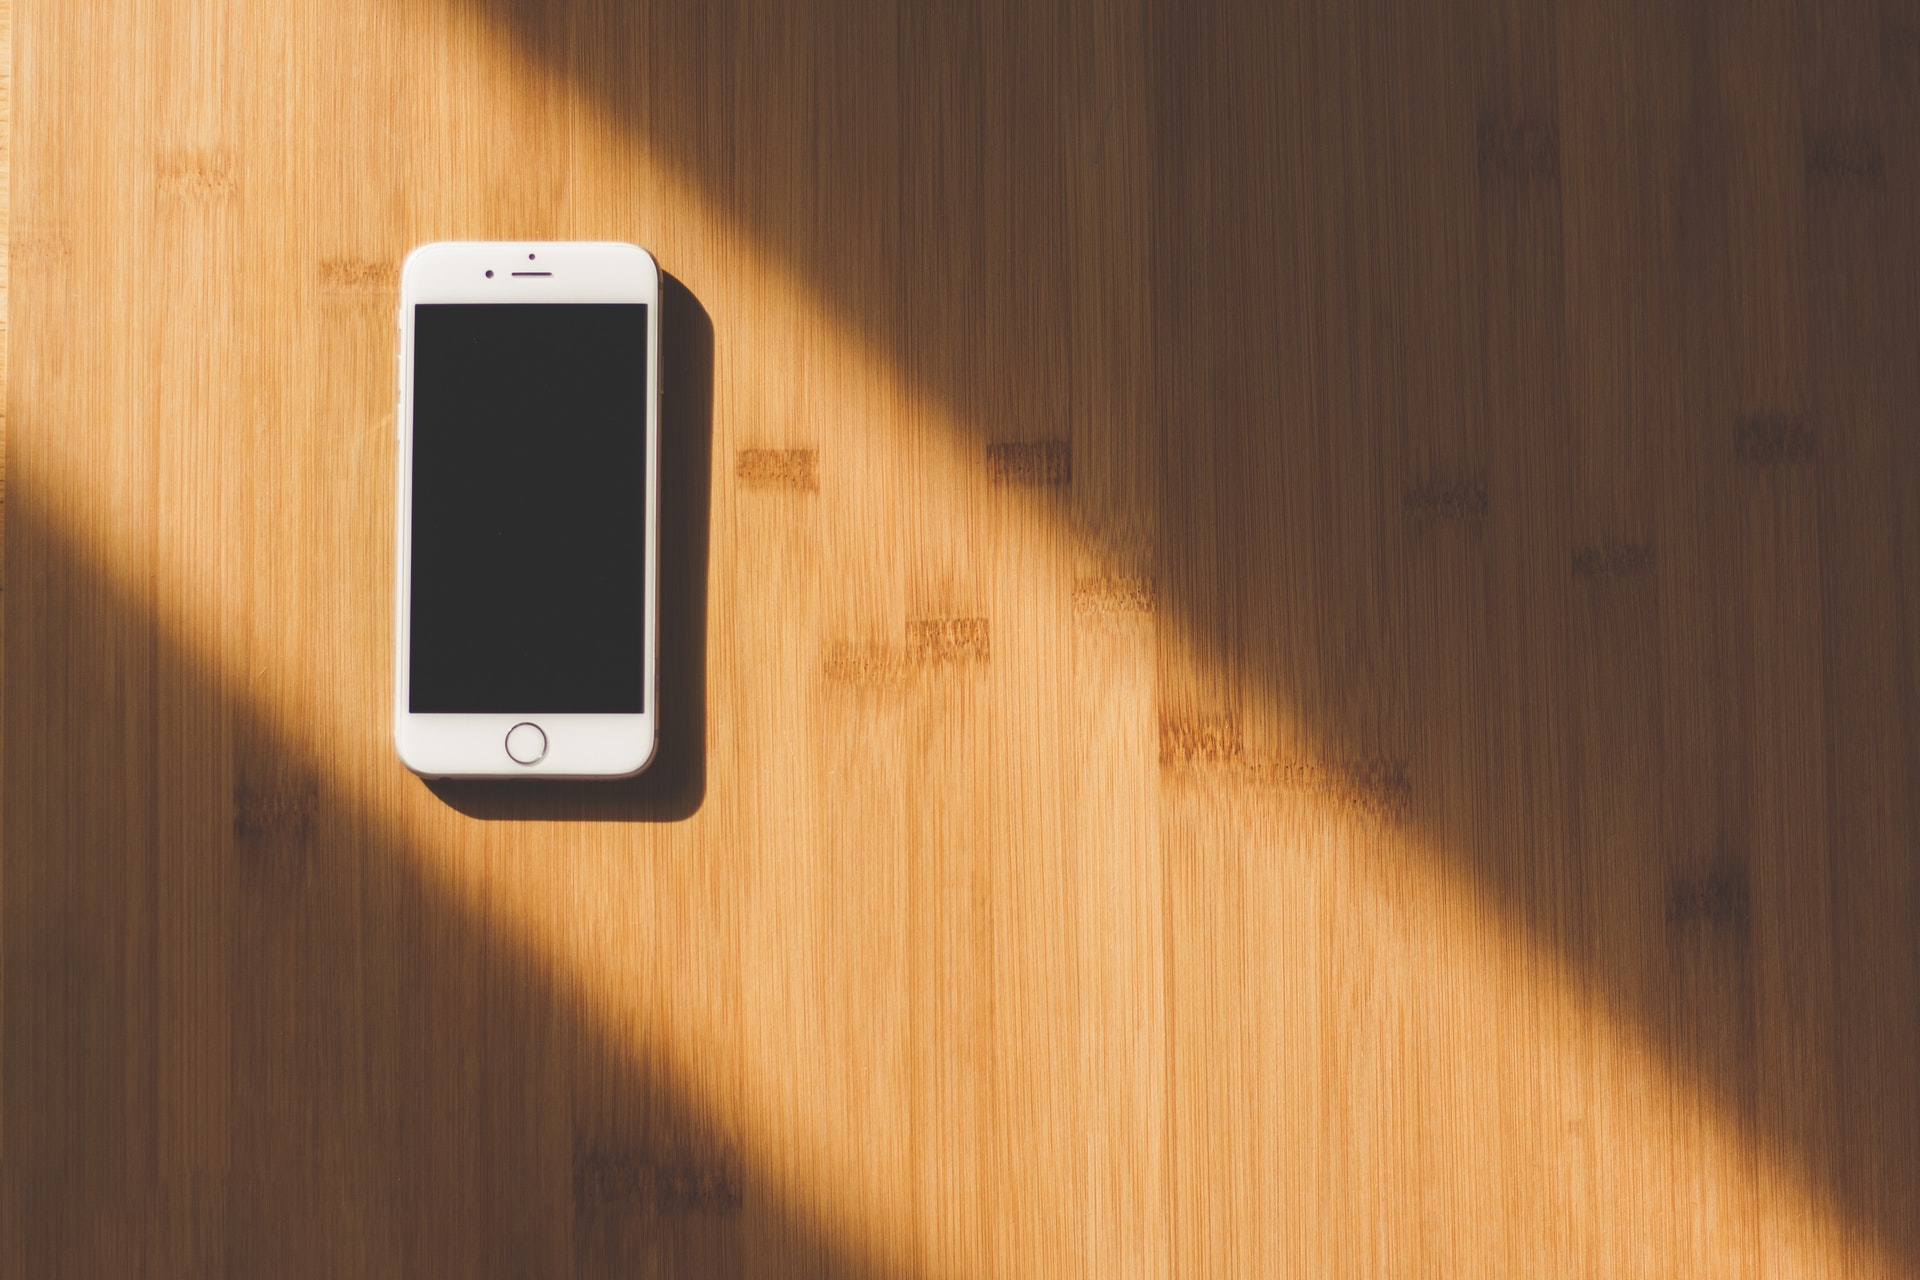 smart phone on wooden desk in sun beam